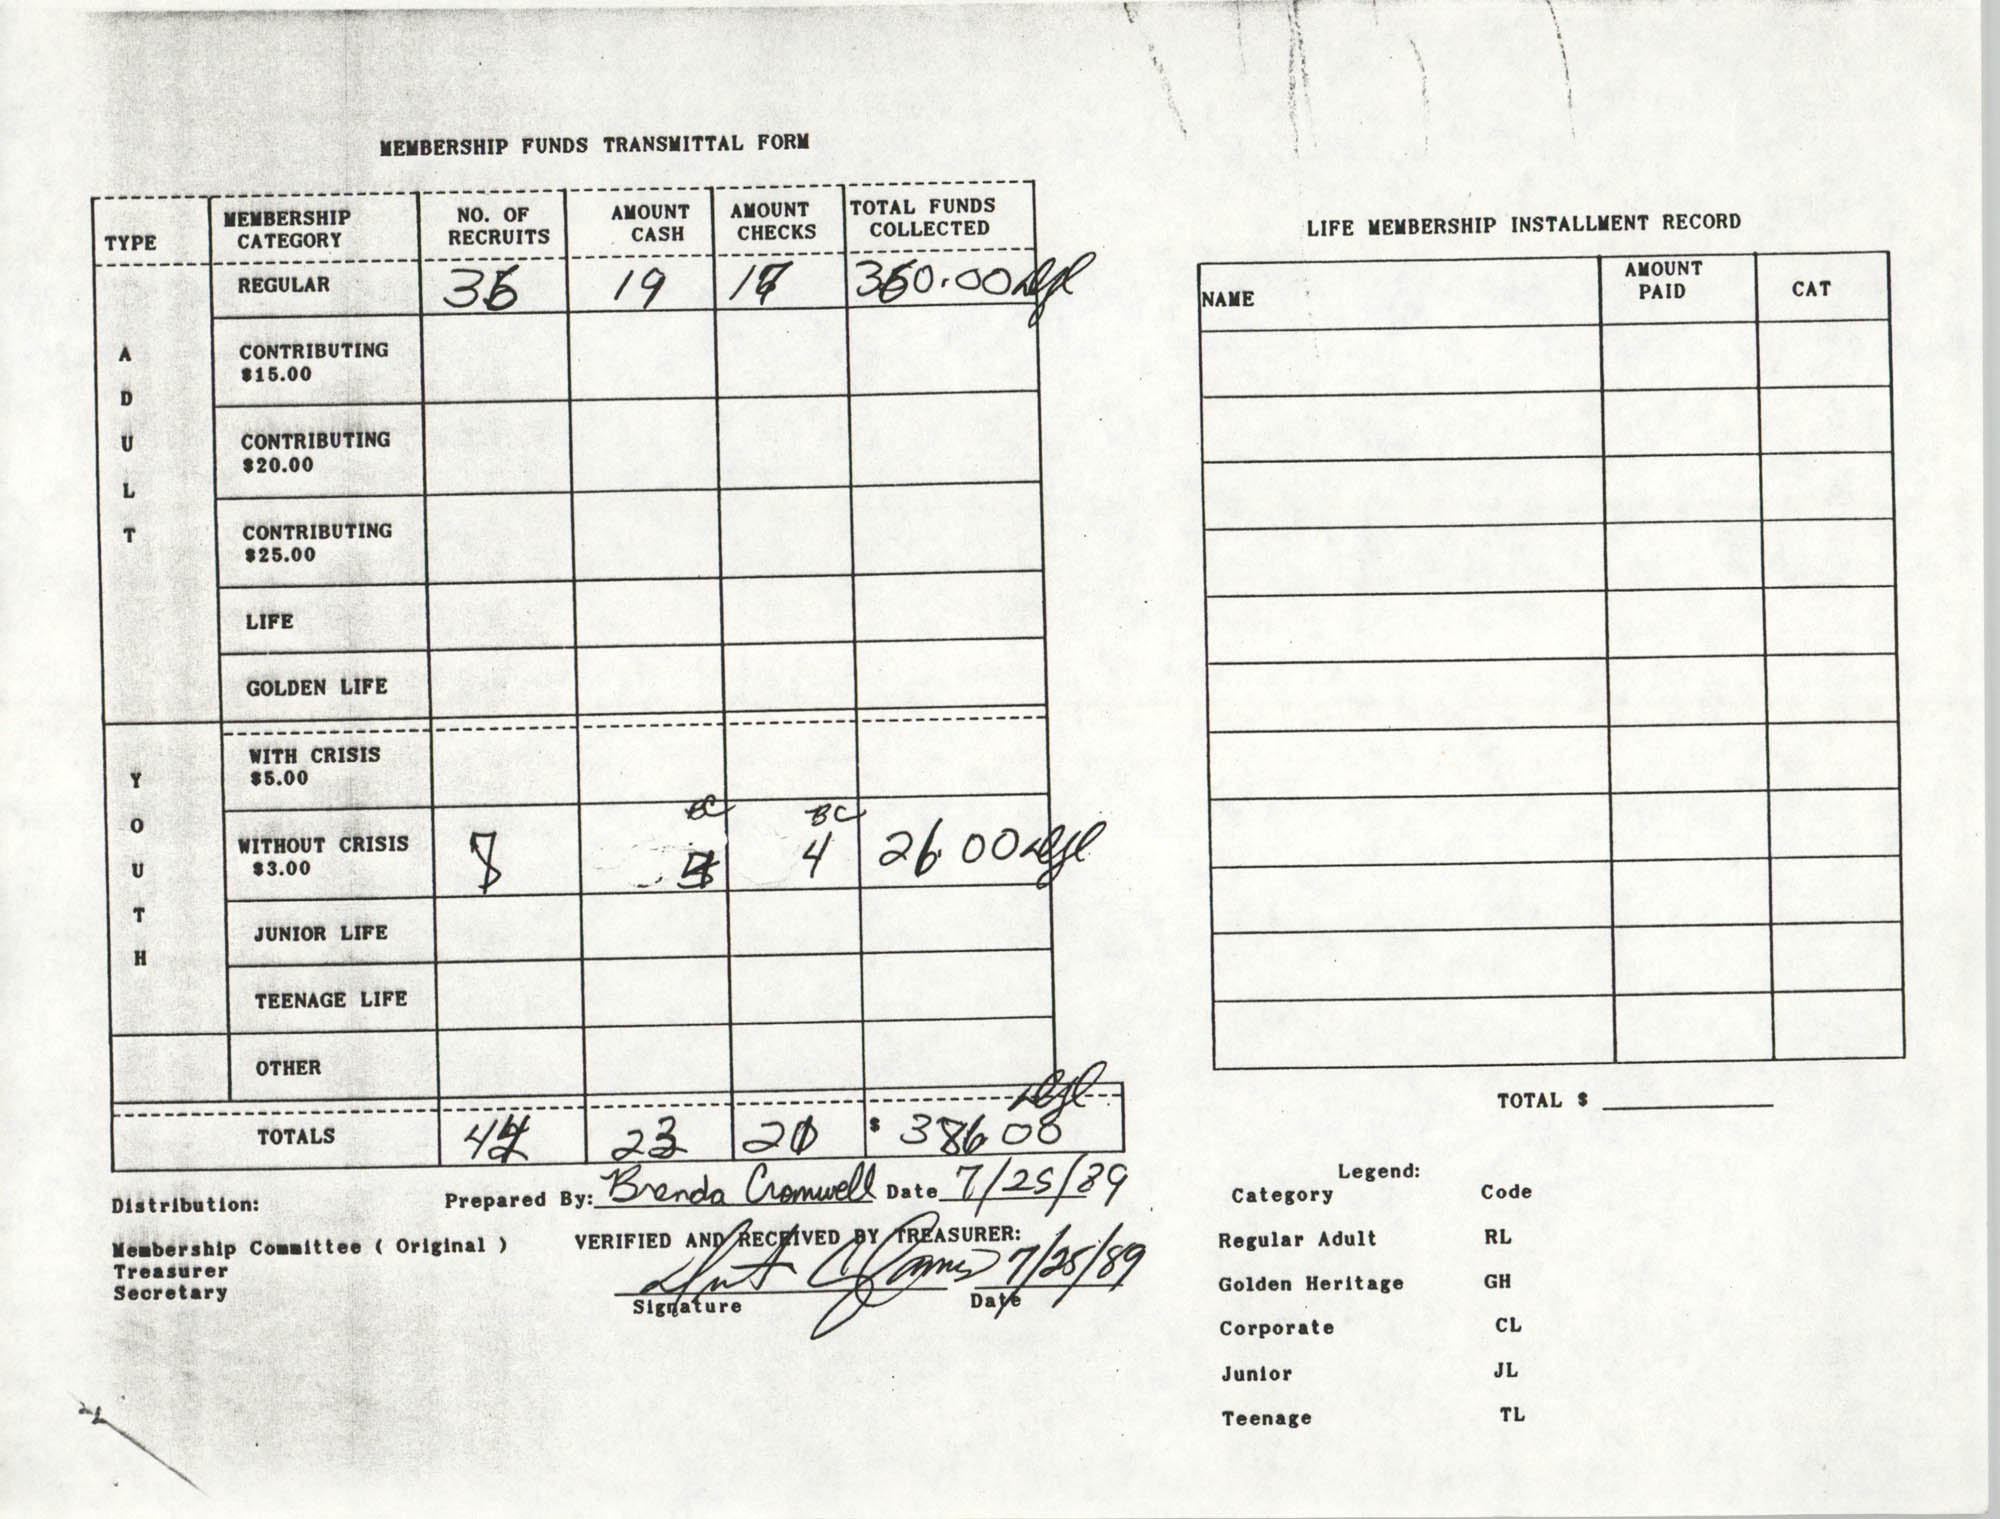 Charleston Branch of the NAACP Funds Transmittal Forms, July 1989, Page 4